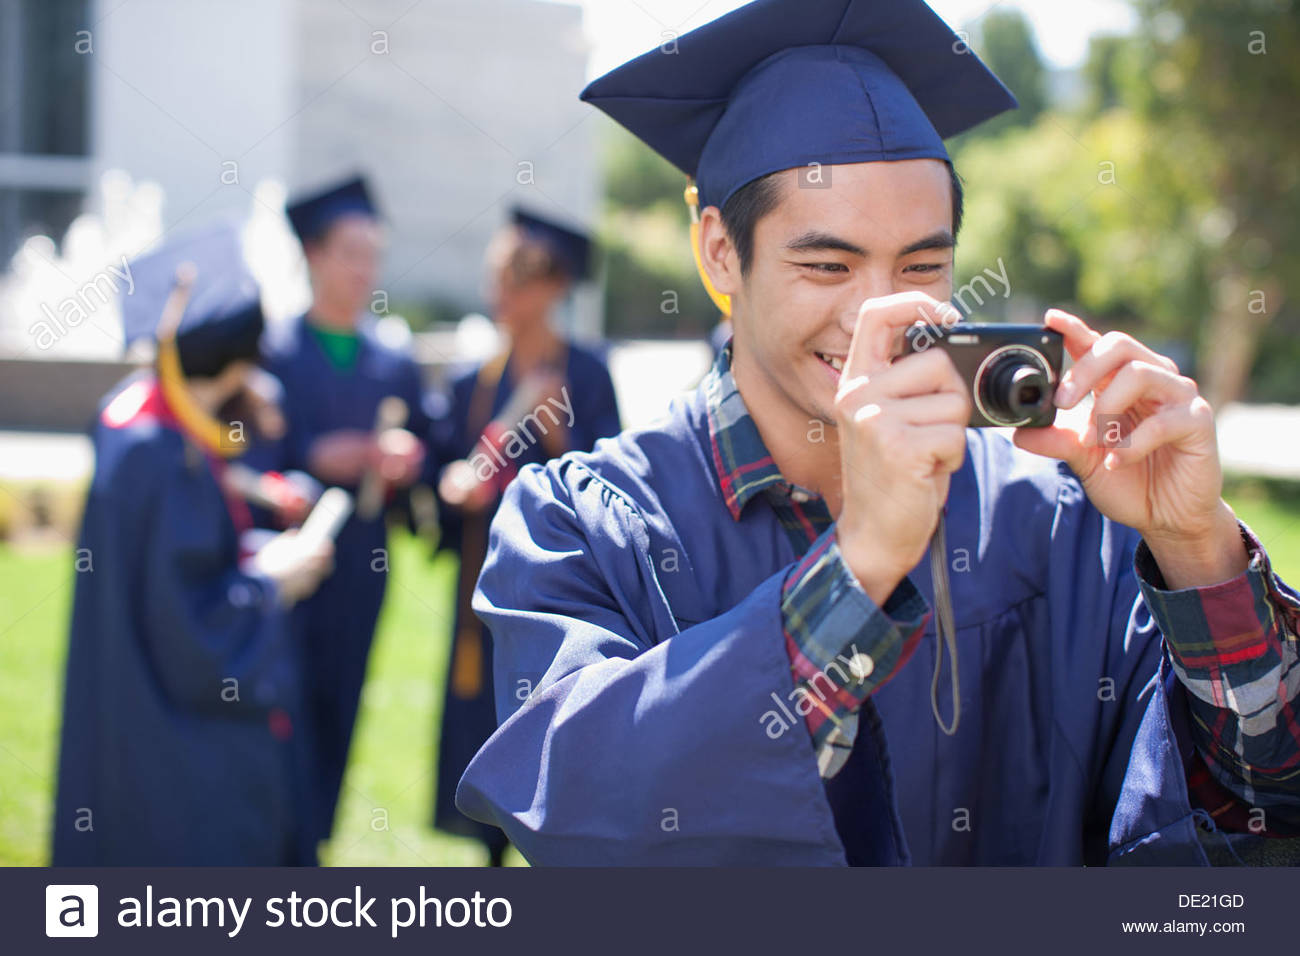 Graduate taking photograph Photo Stock